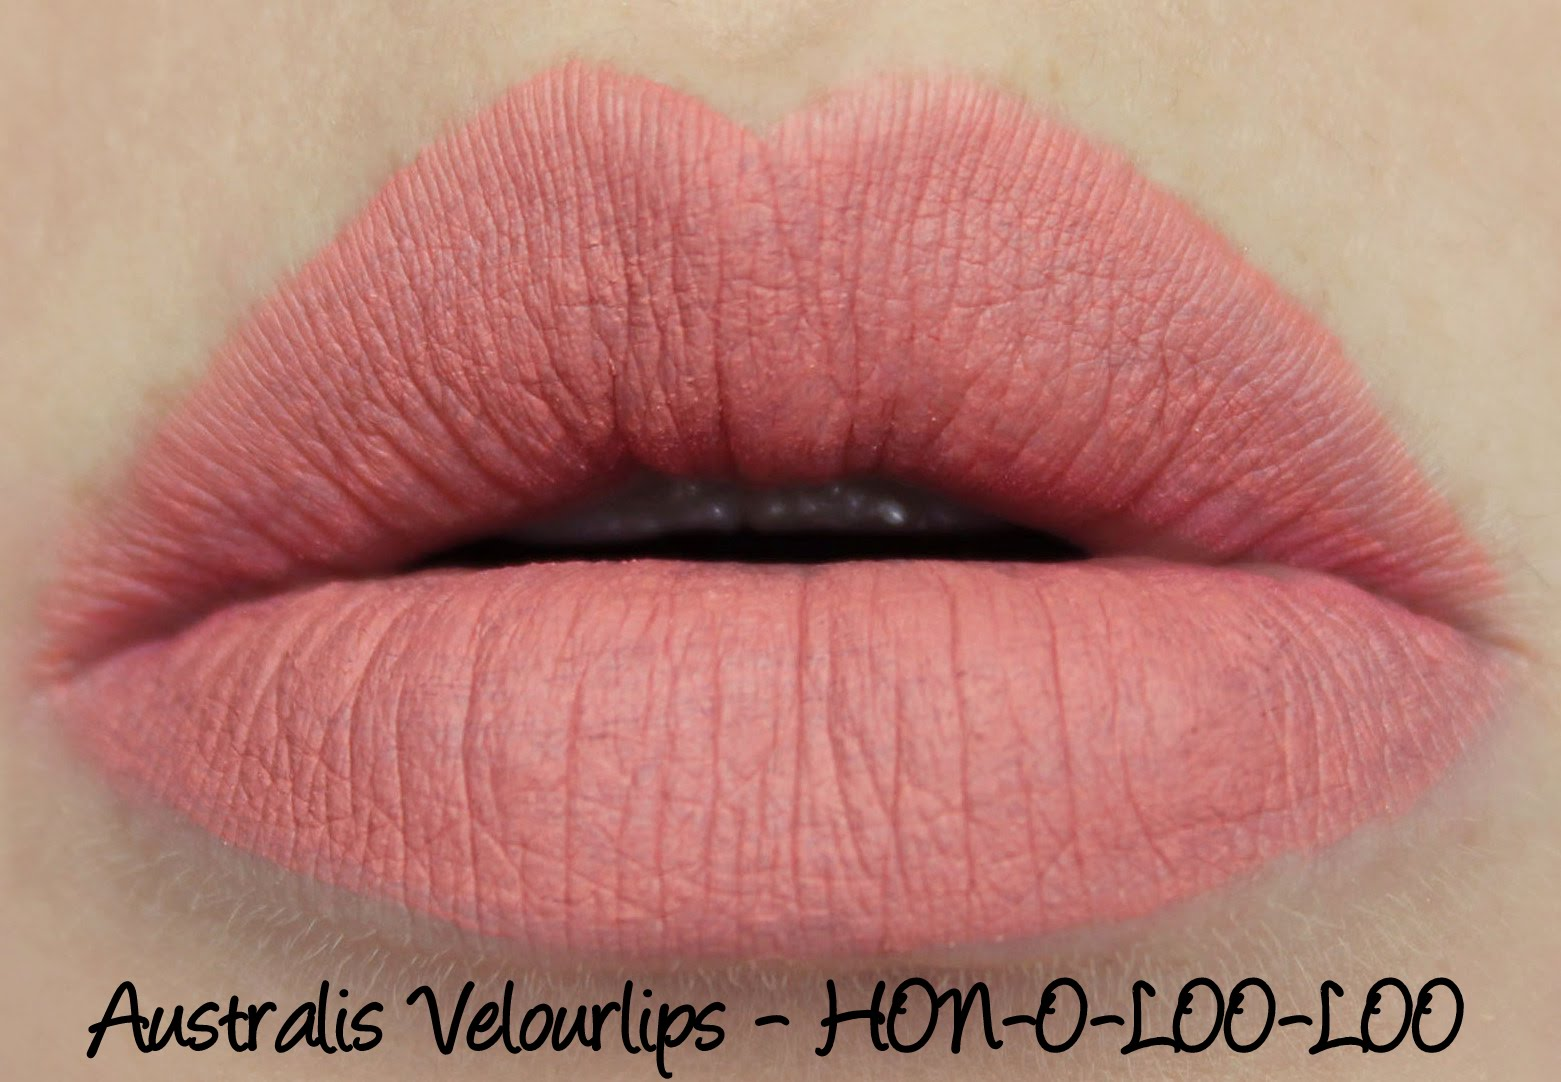 Australis Velourlips - HON-O-LOO-LOO Swatches & Review